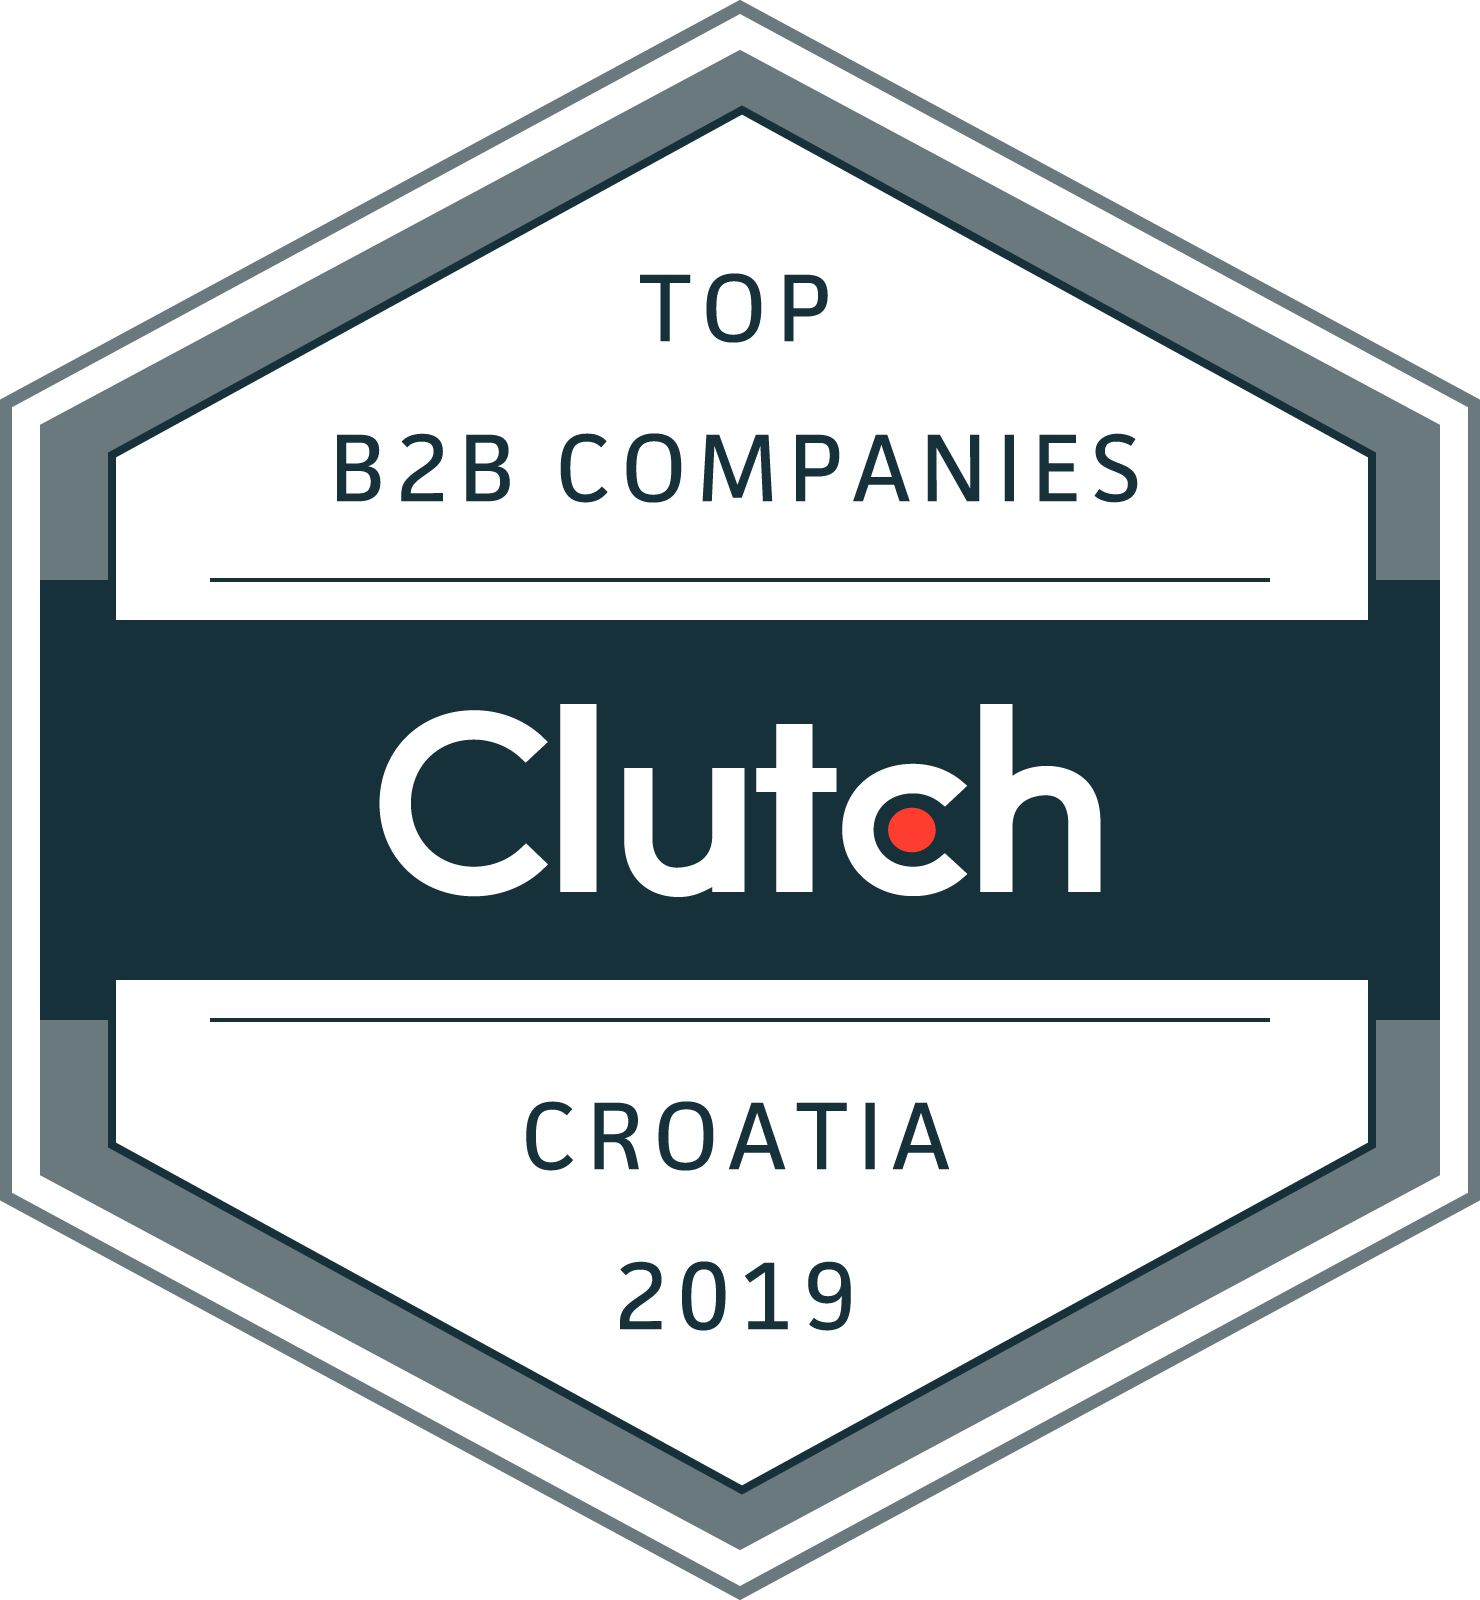 Top B2B companies in Croatia